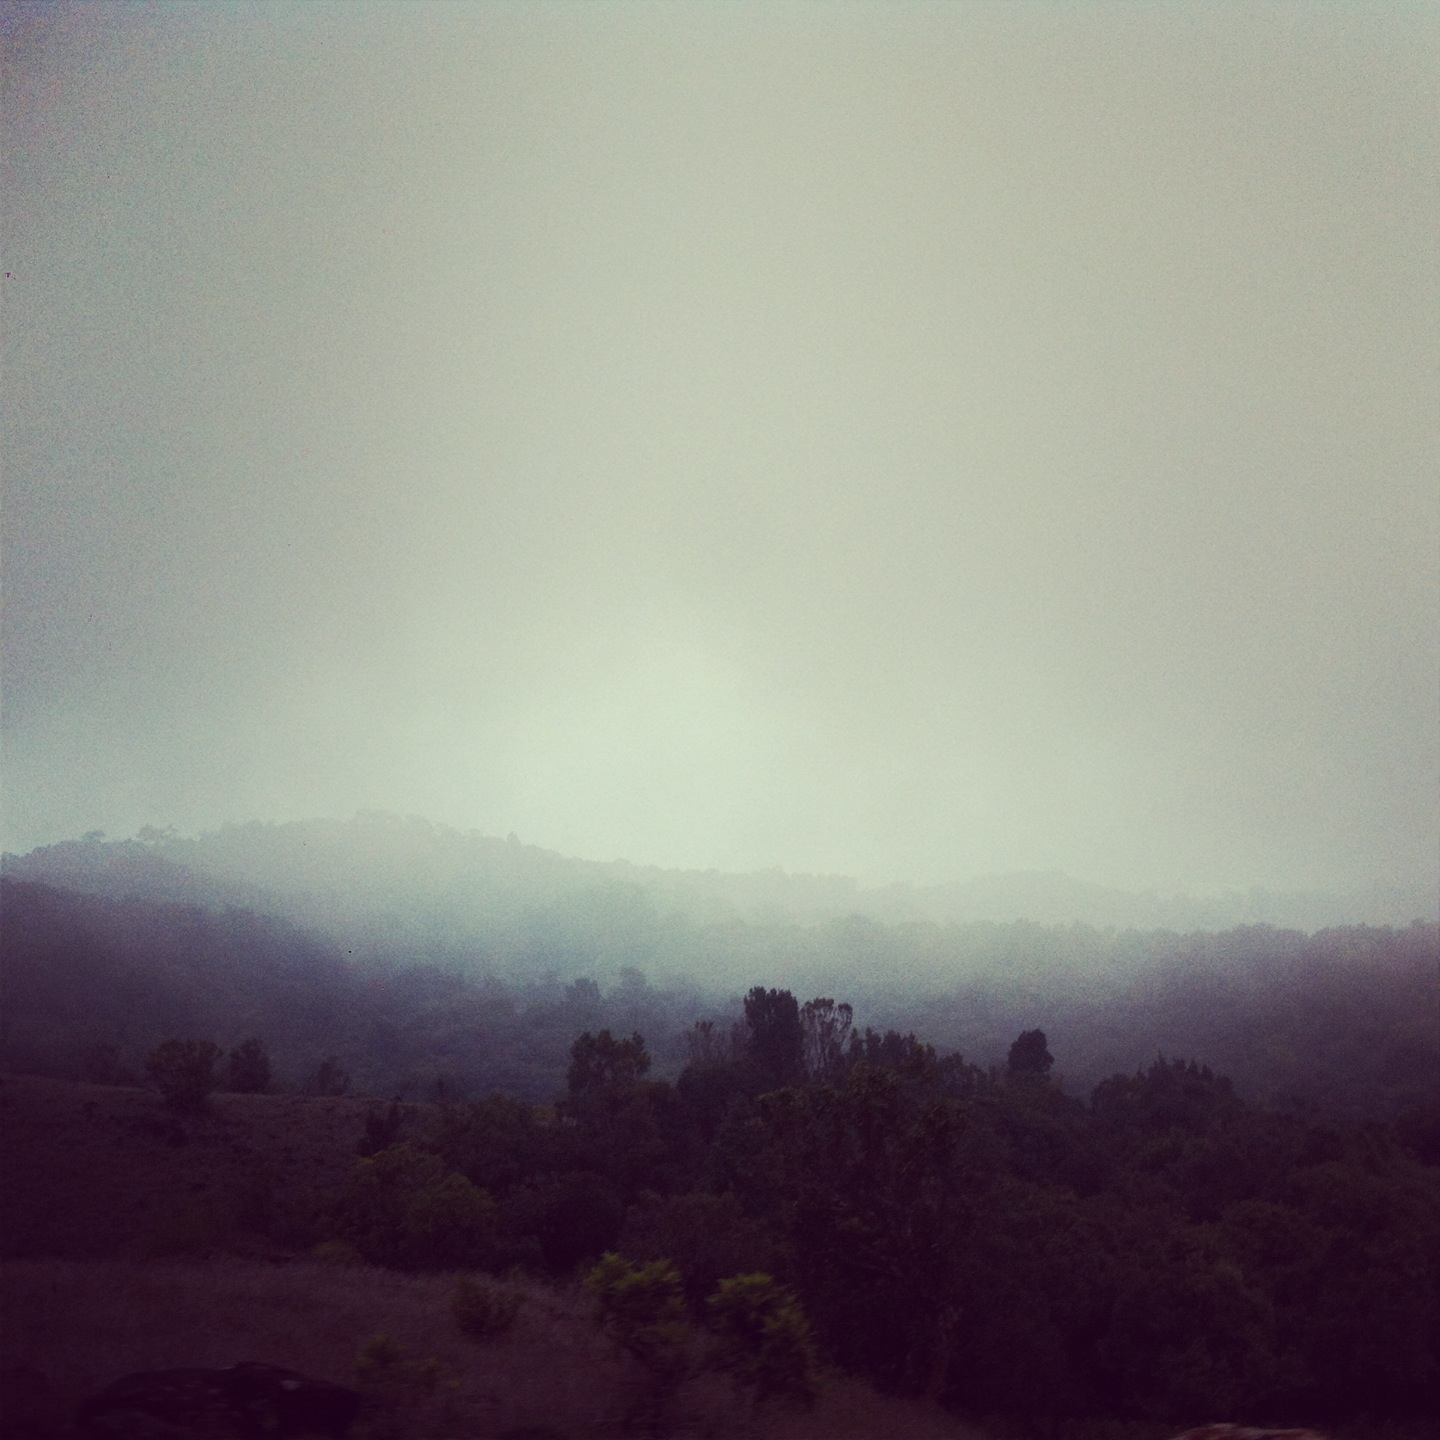 To feel one with the misty hills of Coorg